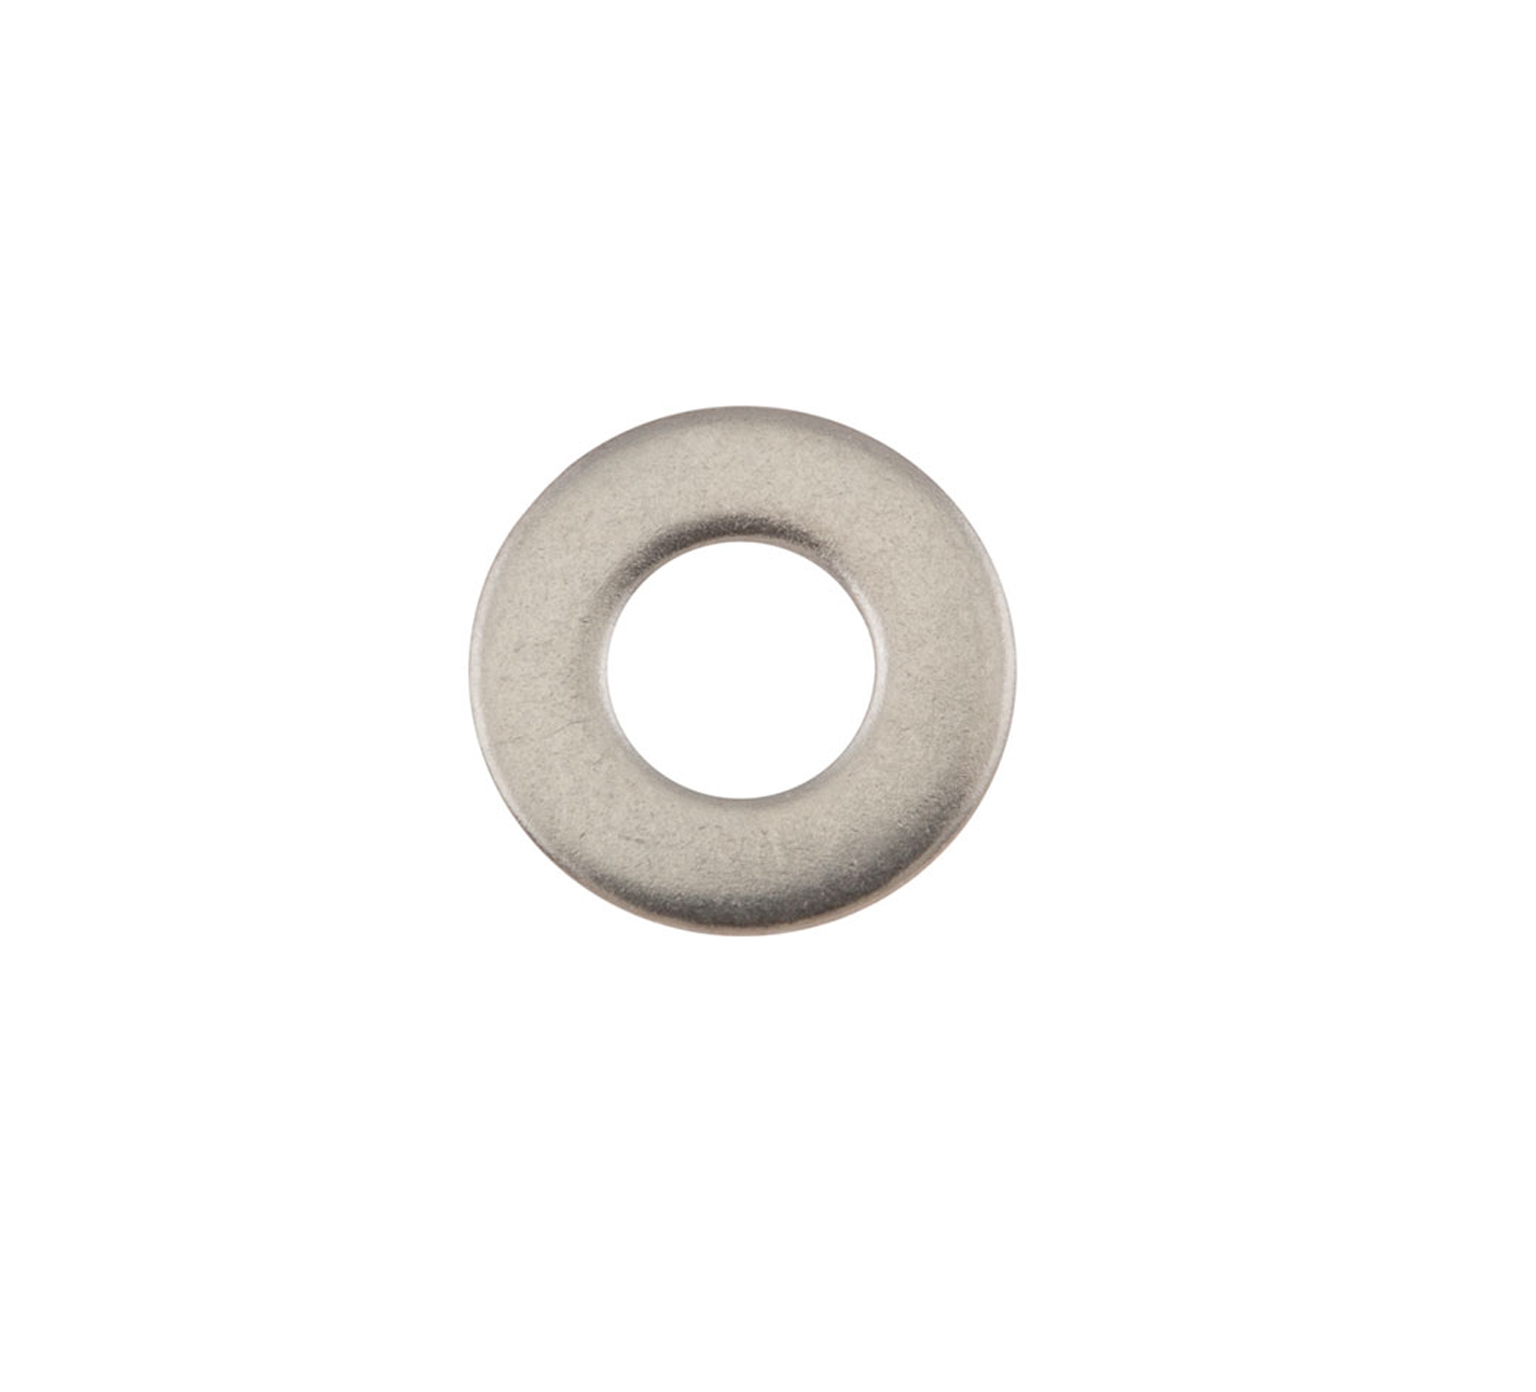 140011 Stainless Steel Flat Washer - 0.438 OD x 0.205 ID x 0.031 in alt 1